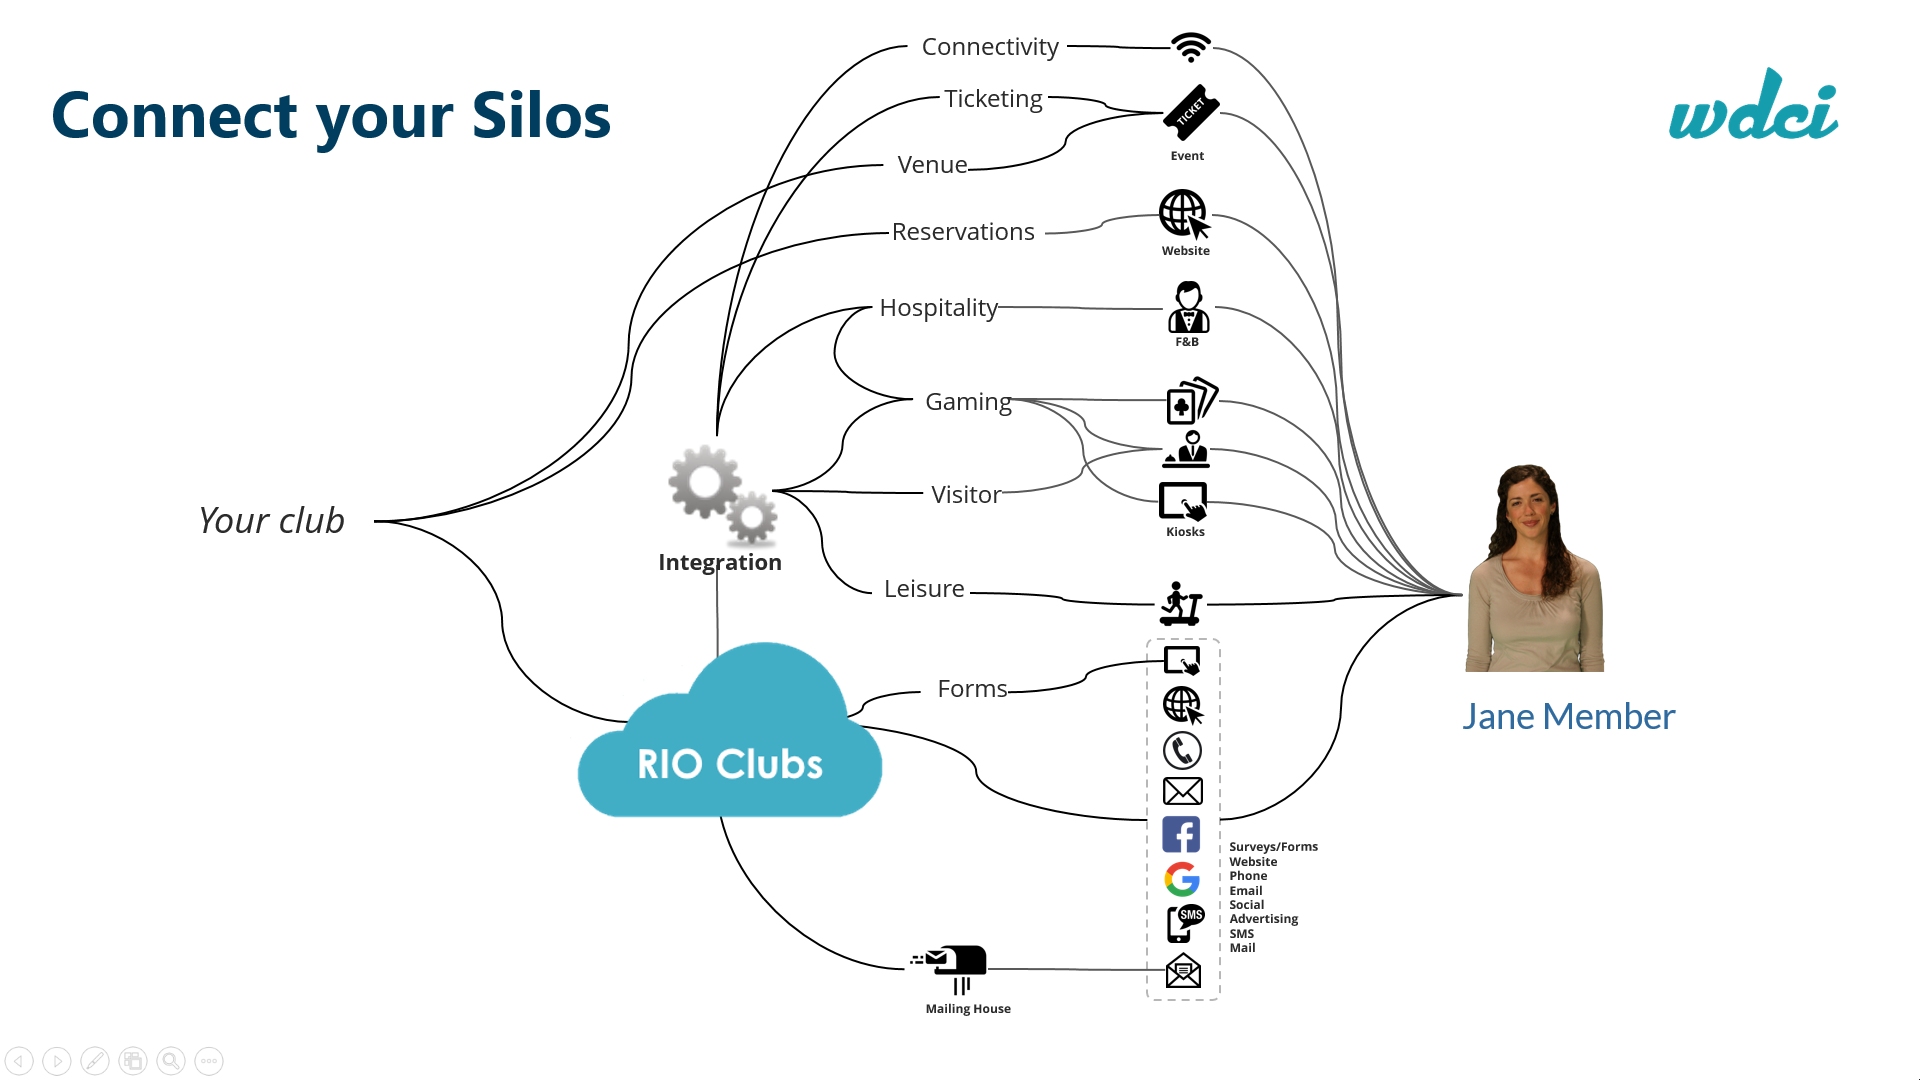 Connected Silos - Clubs